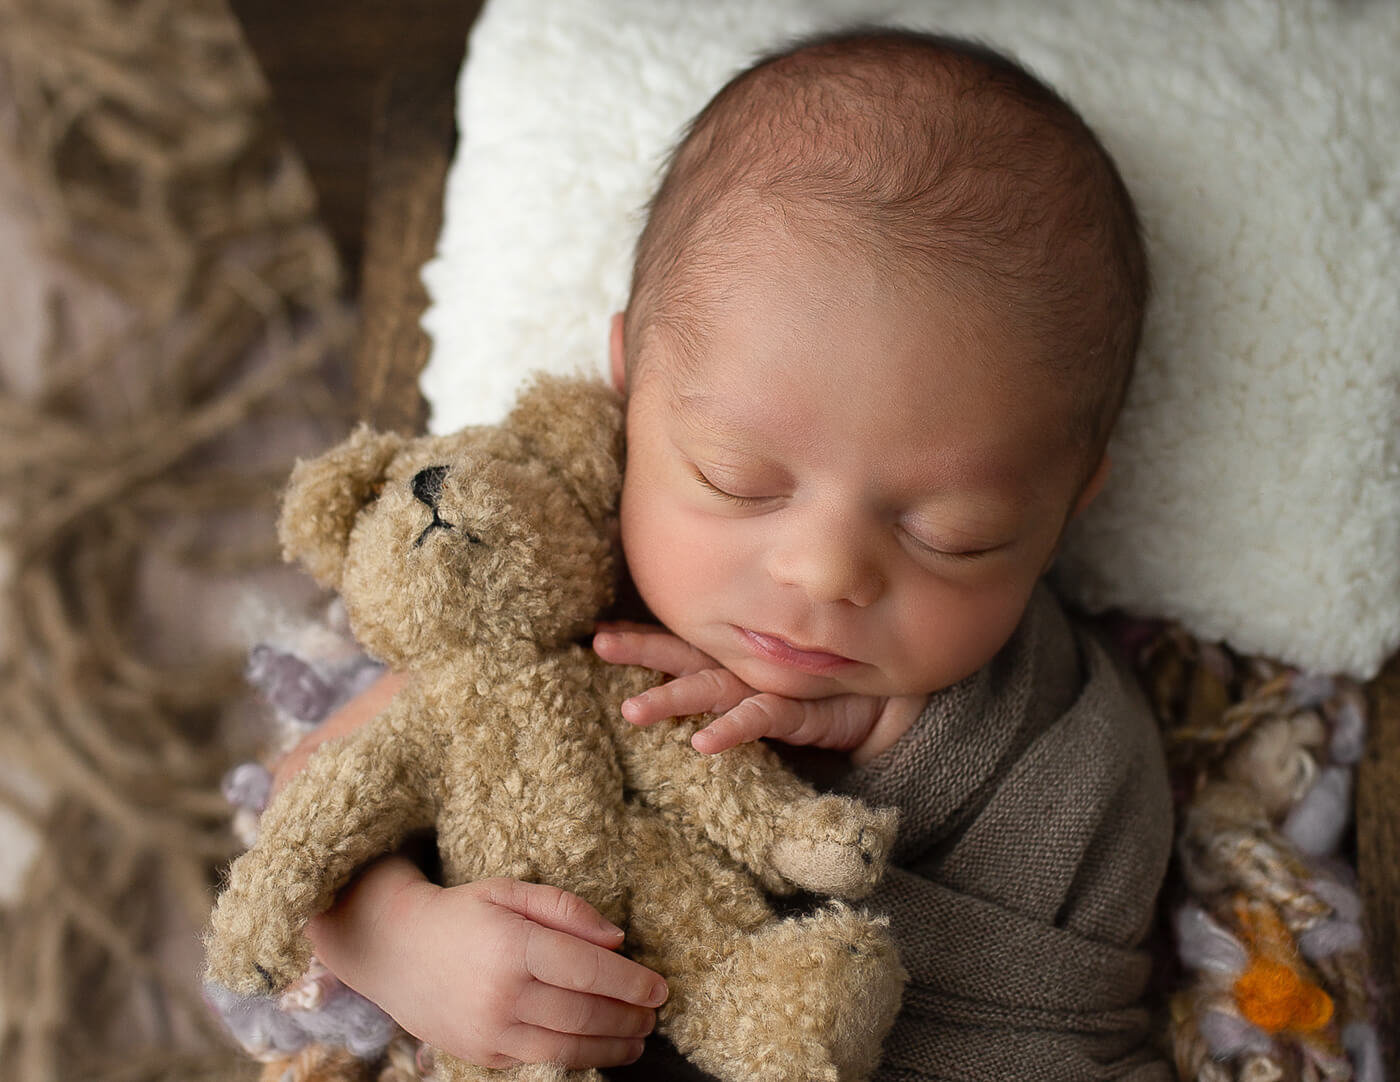 Precious newborn holding a teddy bear in our Rochester, NY studio.